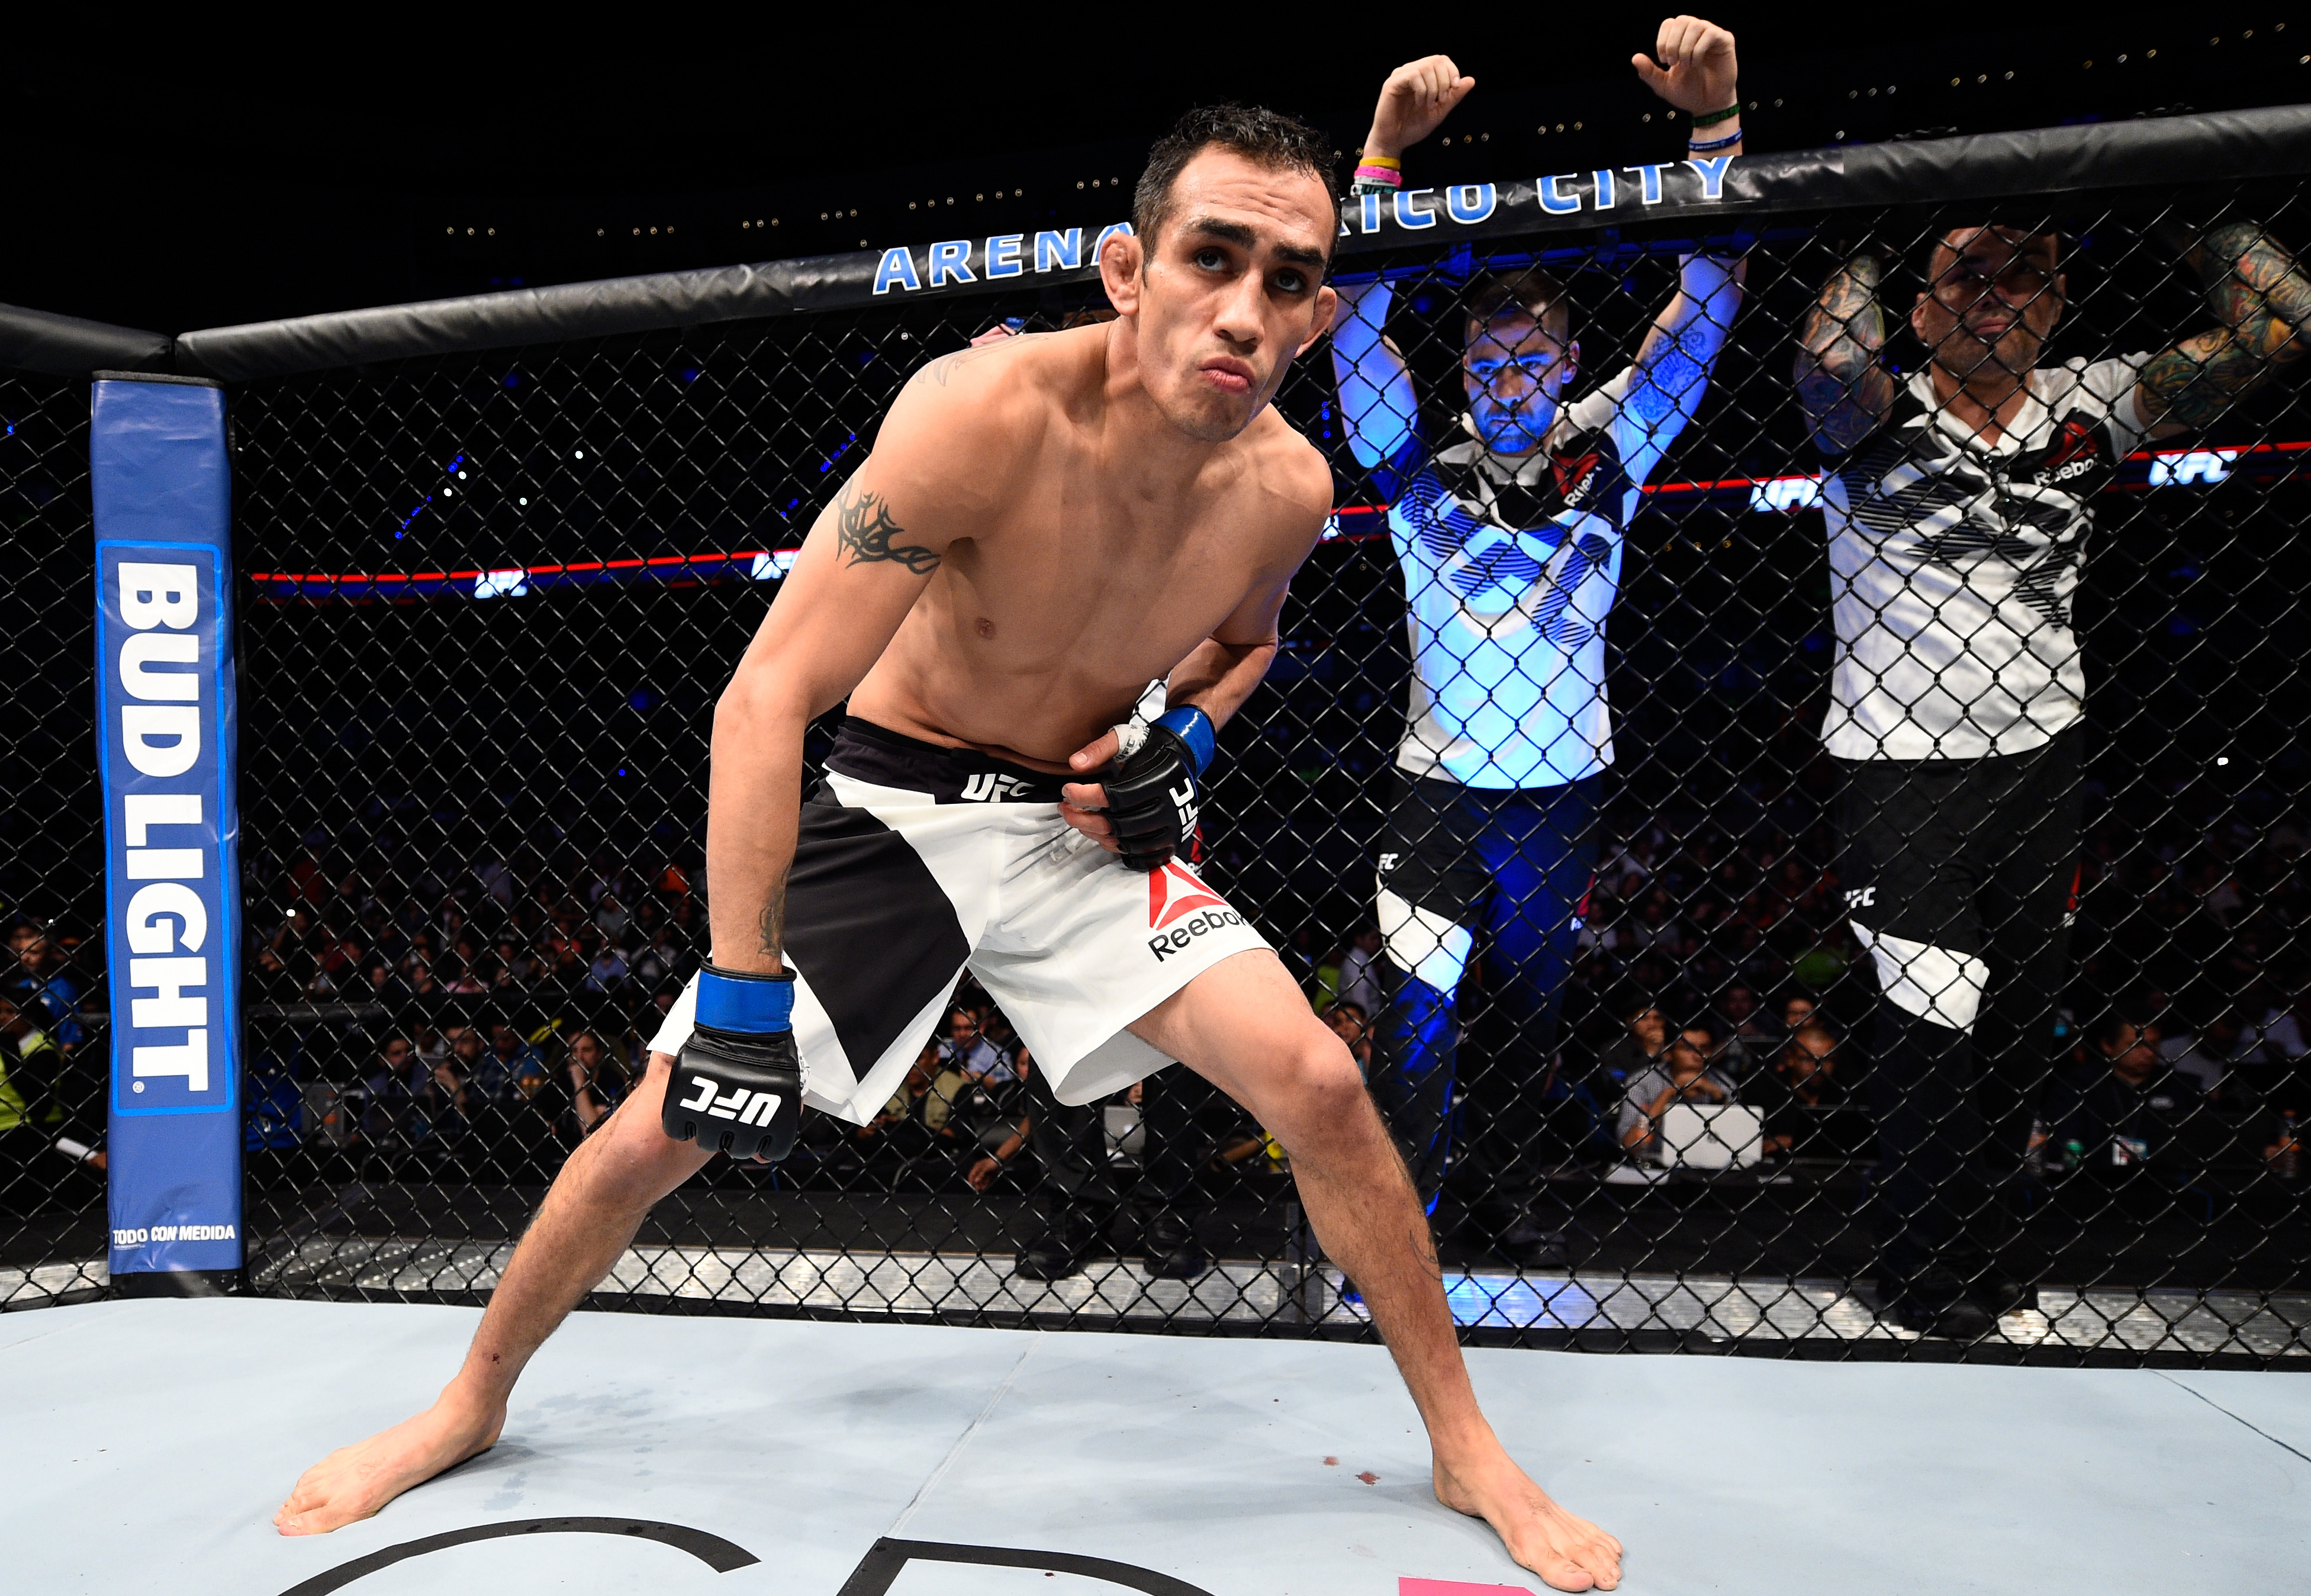 Tony Ferguson within touching distance of lightweight title shot after record breaking win over Rafael dos Anjos at UFC Fight Night 98